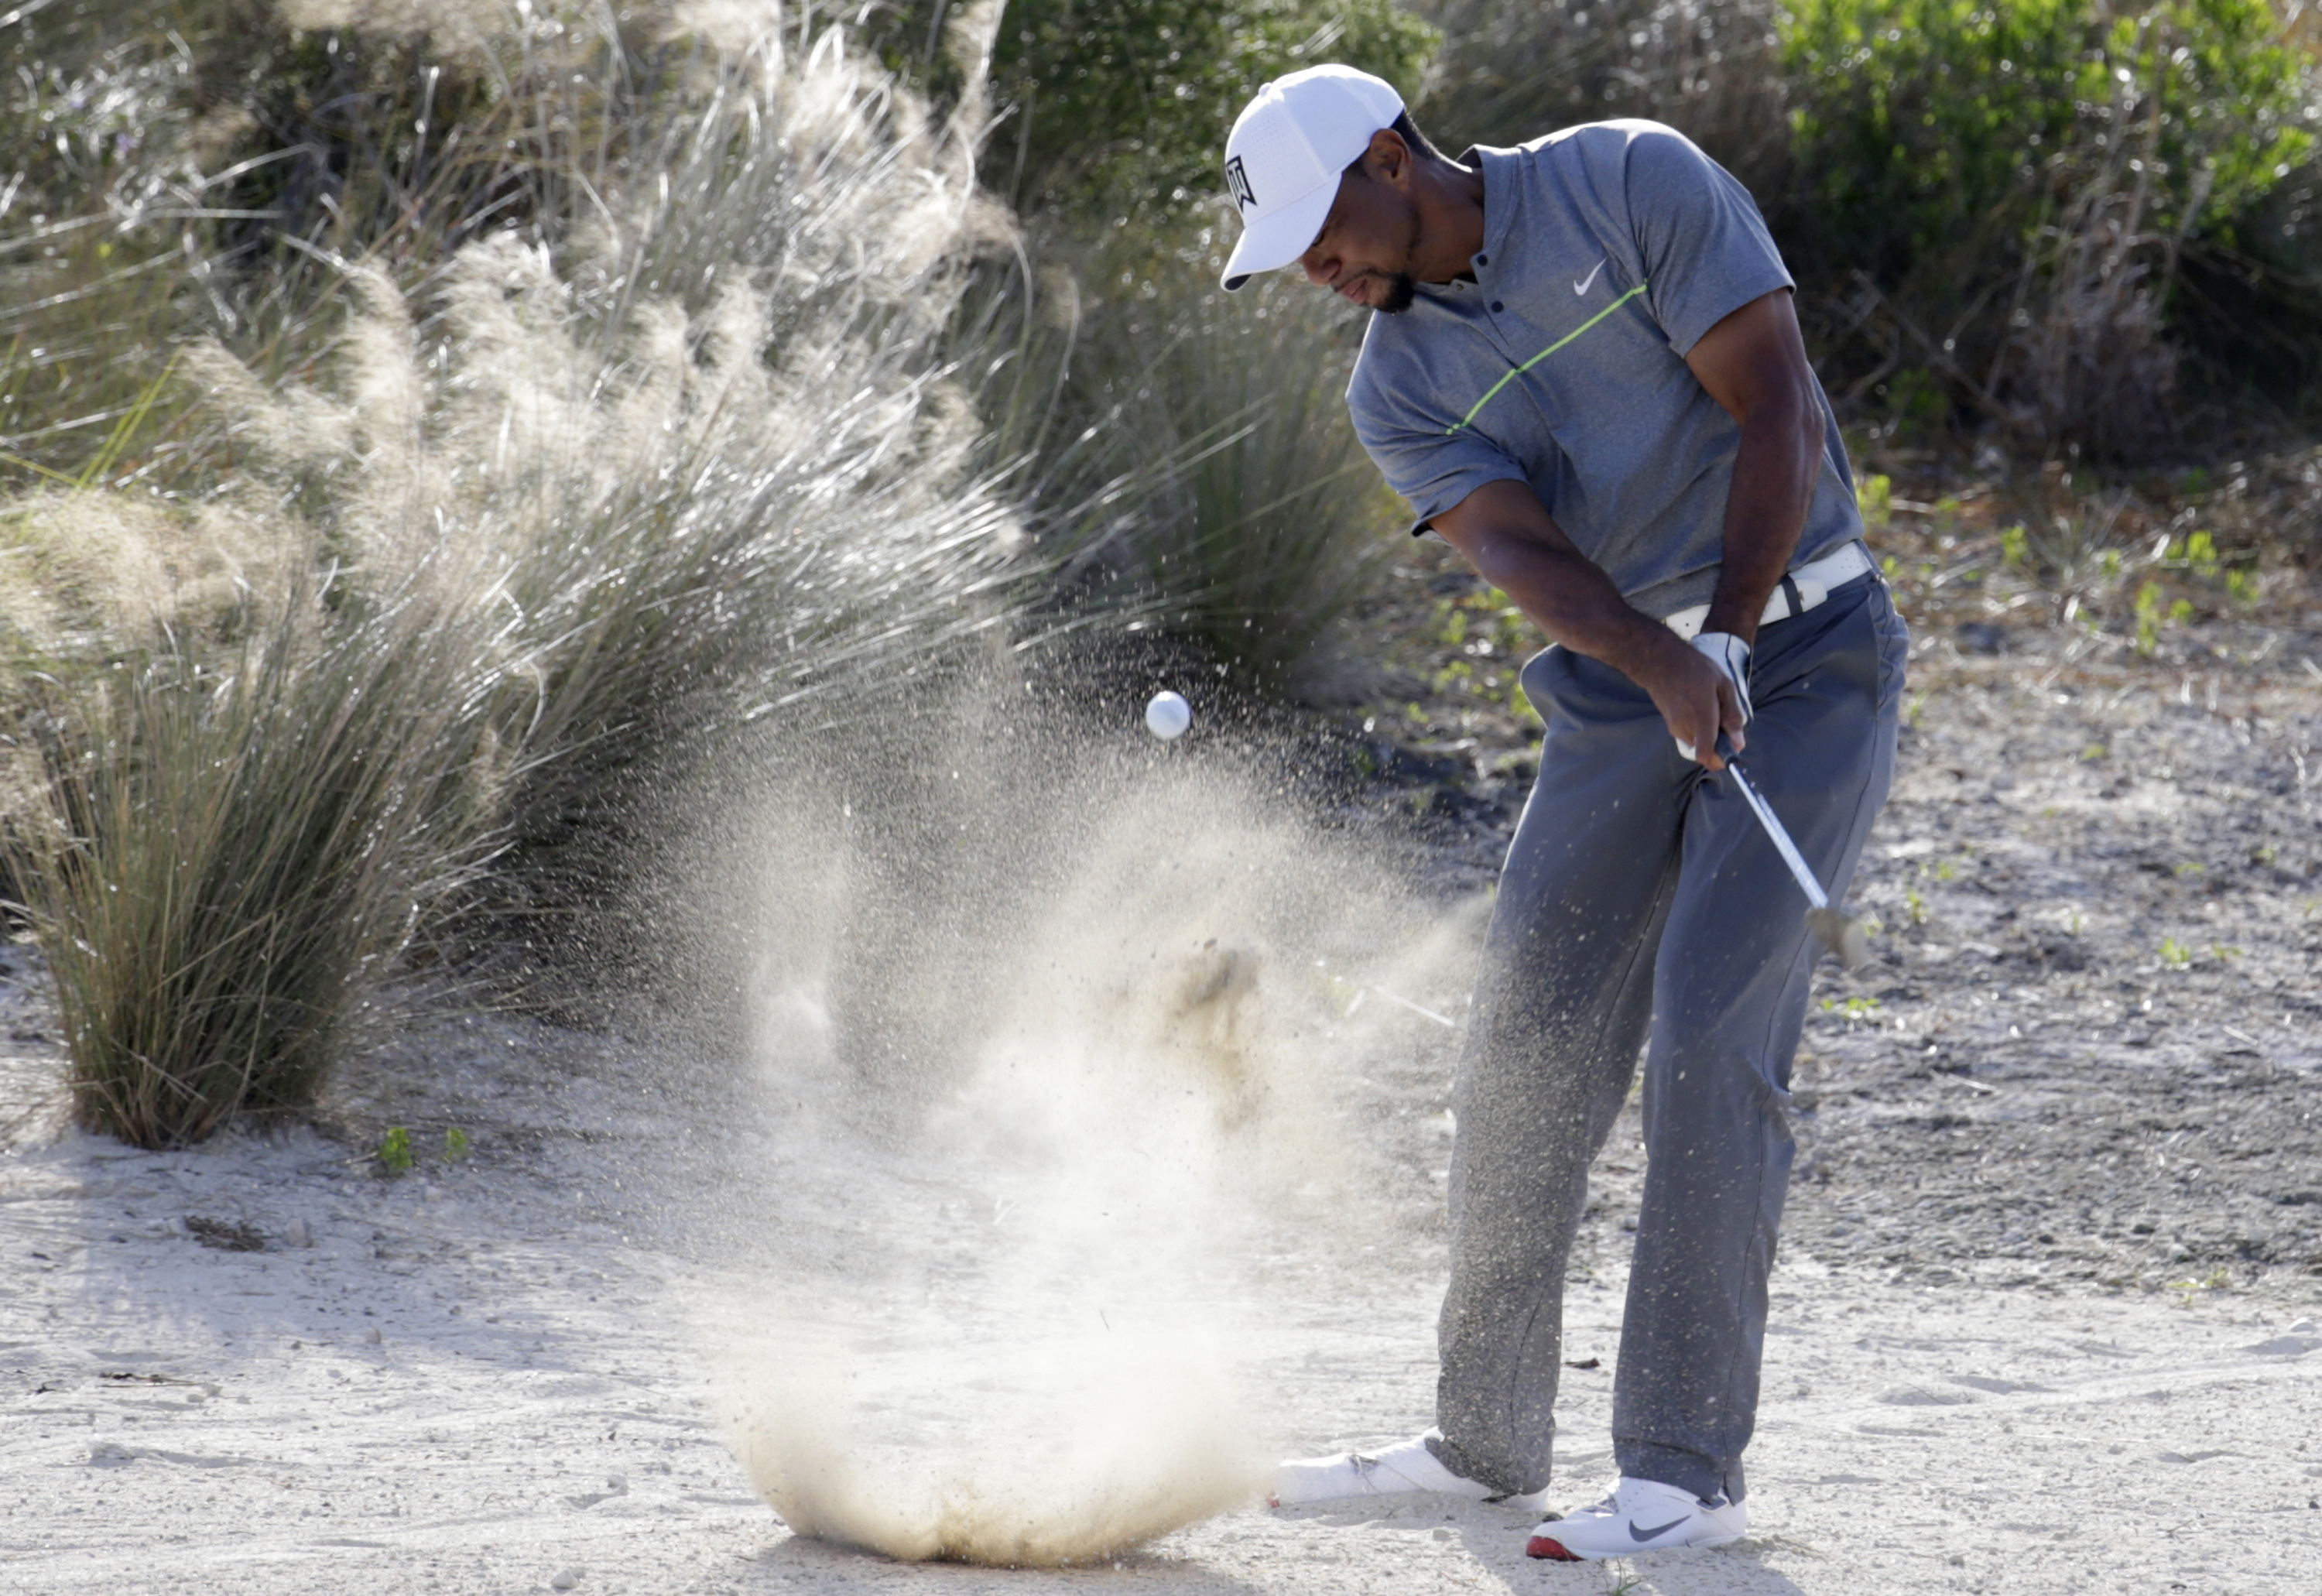 Tiger Woods hits from the sand on the 14th hole during the third round at the Hero World Challenge golf tournament, Saturday, Dec. 3, 2016, in Nassau, Bahamas. (AP Photo/Lynne Sladky)